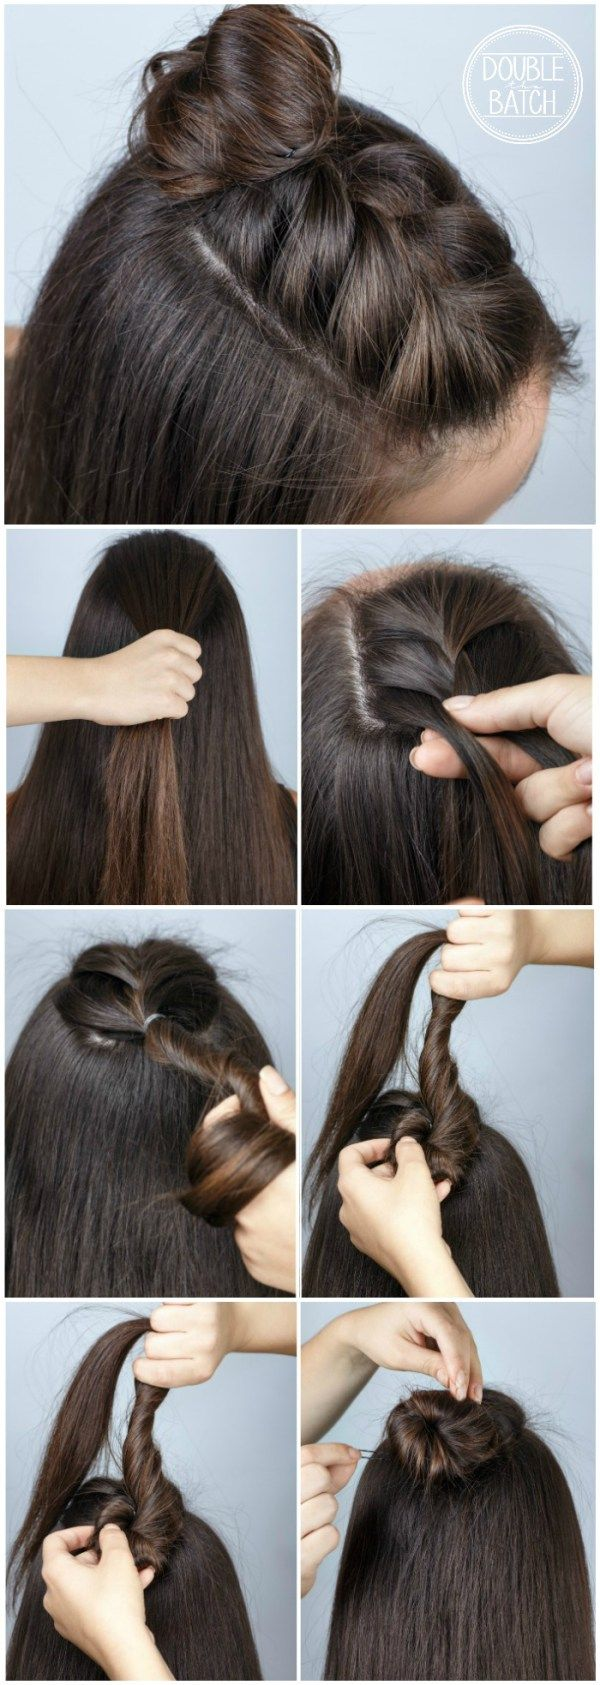 Half Braid Tutorial Video hairstyle tutorial Included Awesome